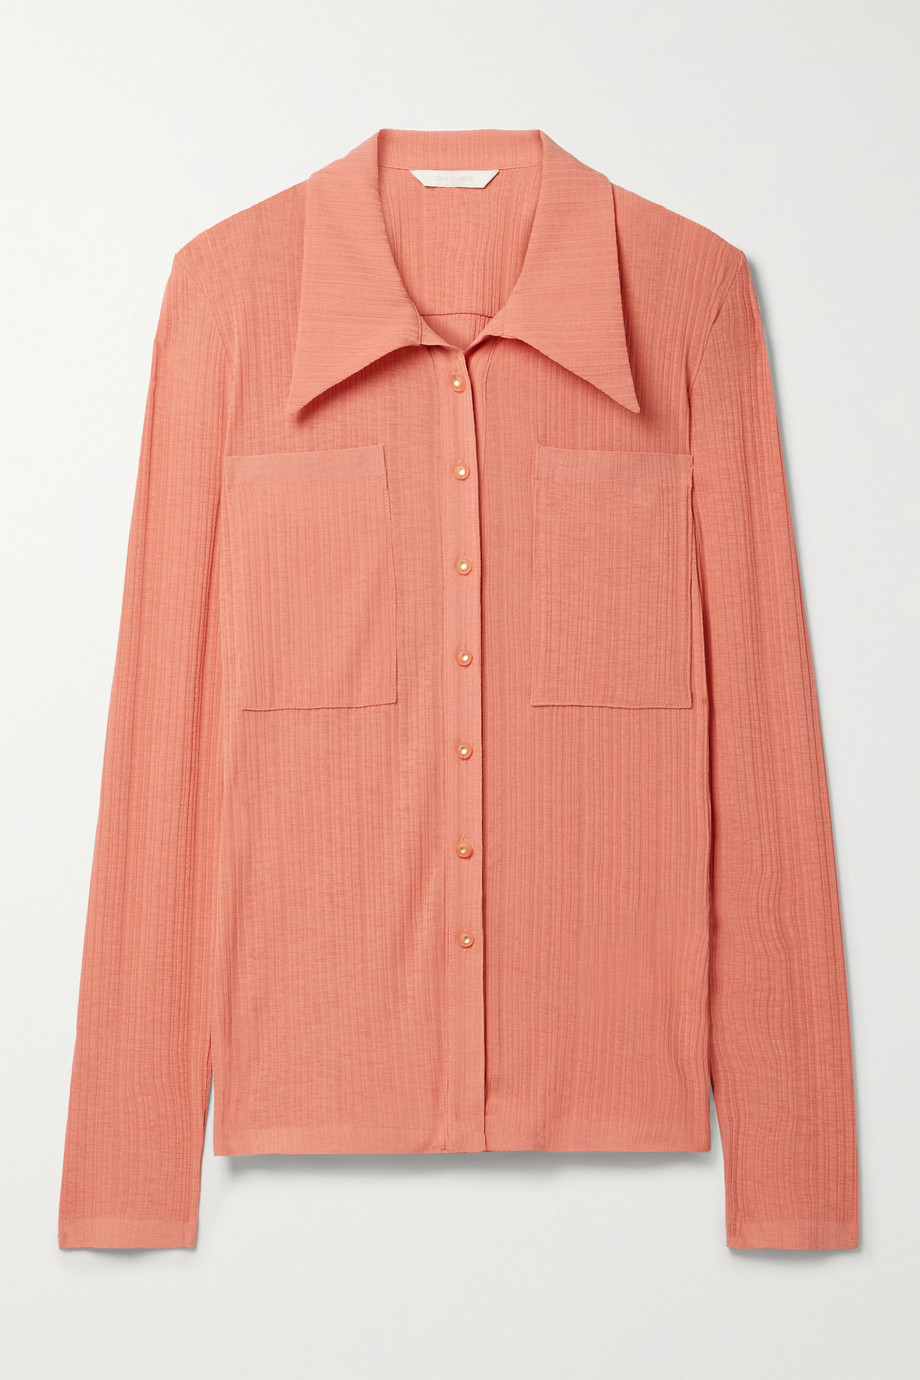 LOW CLASSIC Ribbed jersey shirt